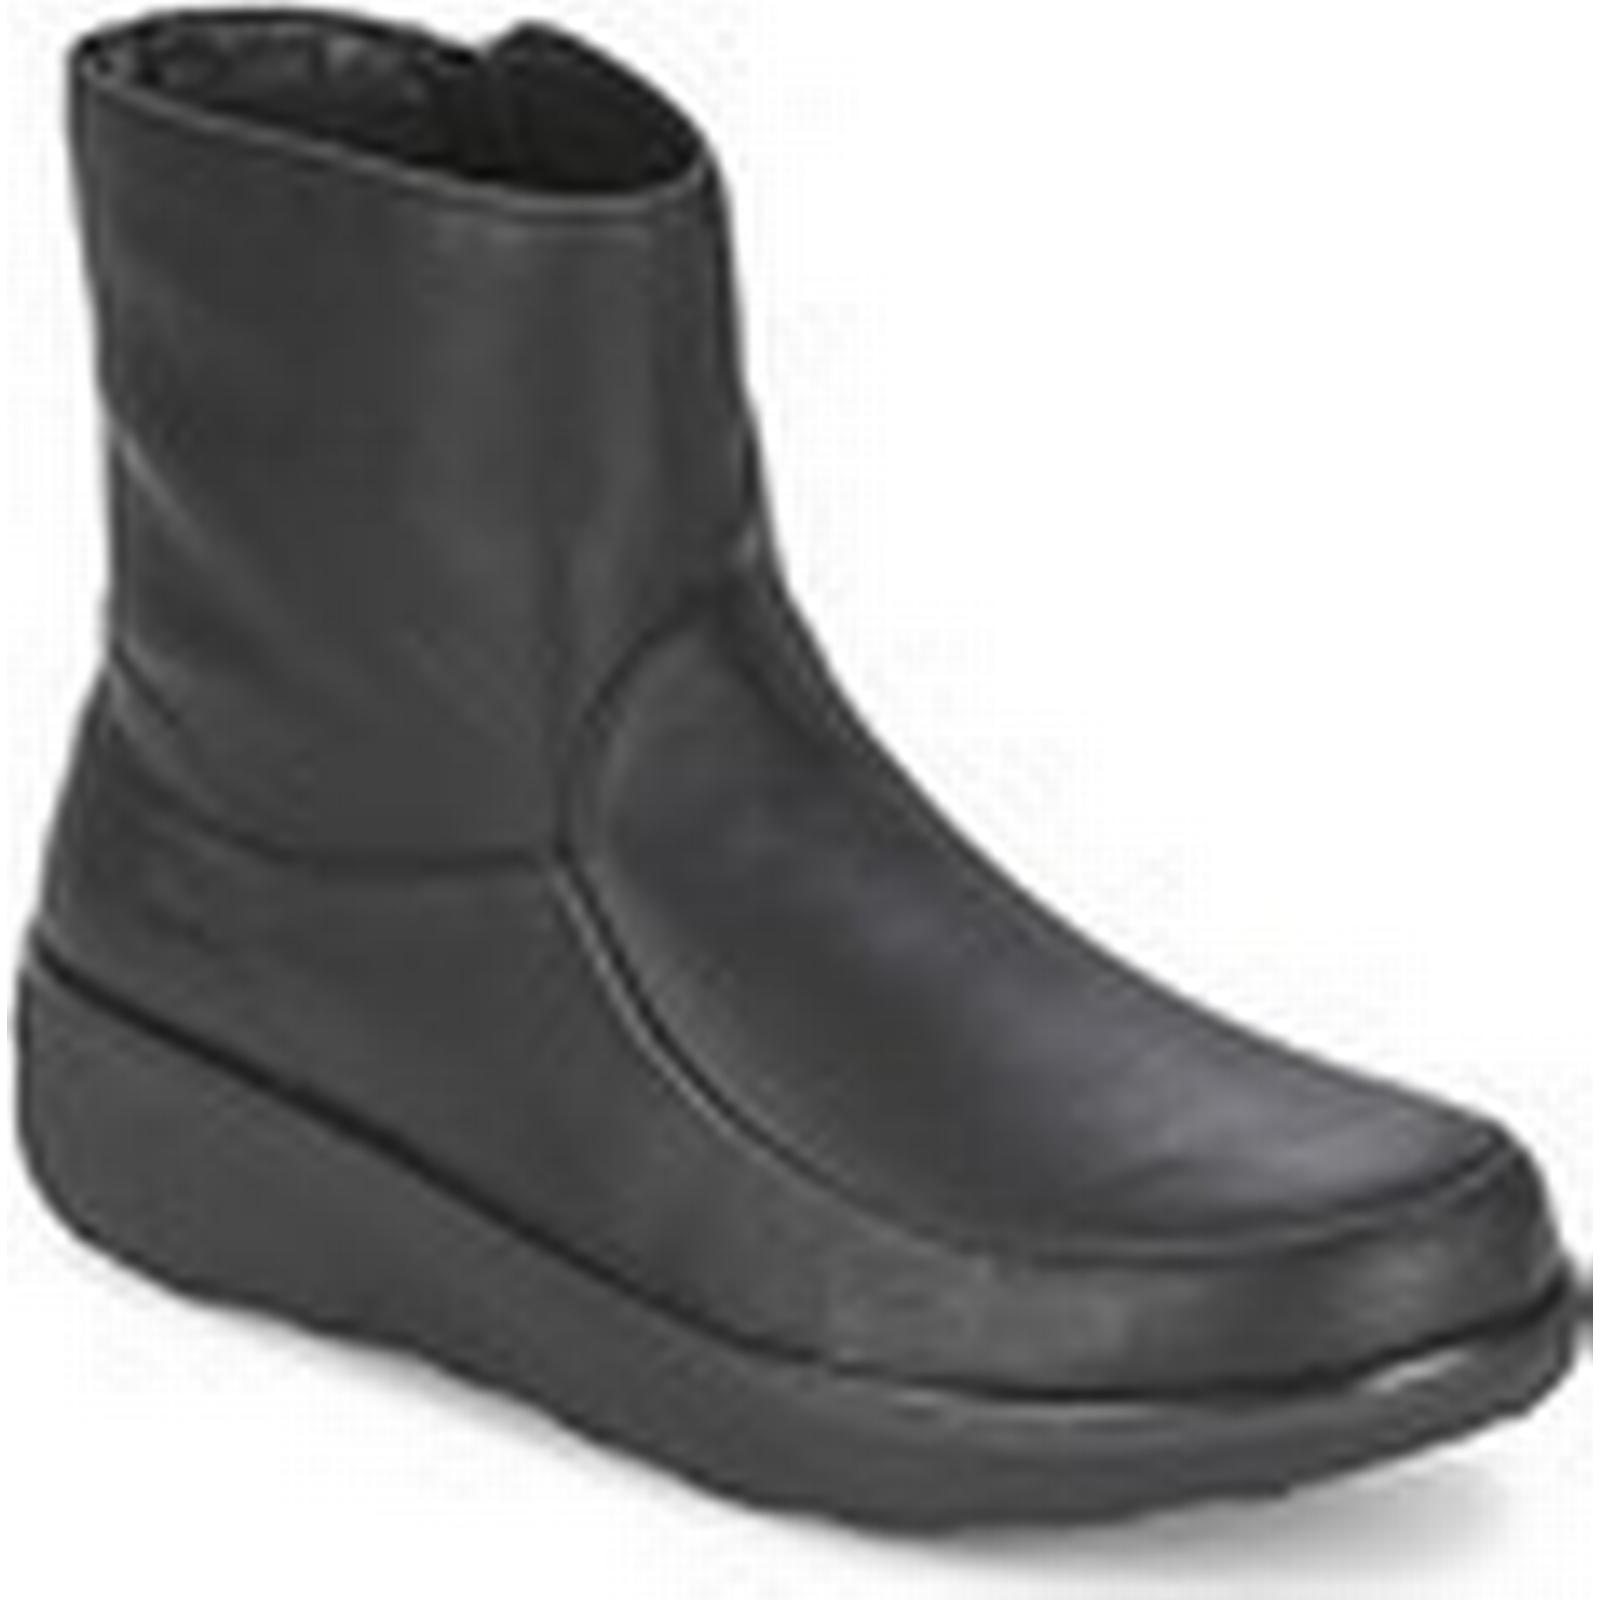 FitFlop  LOAFF SHORTY ZIP BOOT  women's Low Ankle Boots Boots Ankle in Black c07fb5